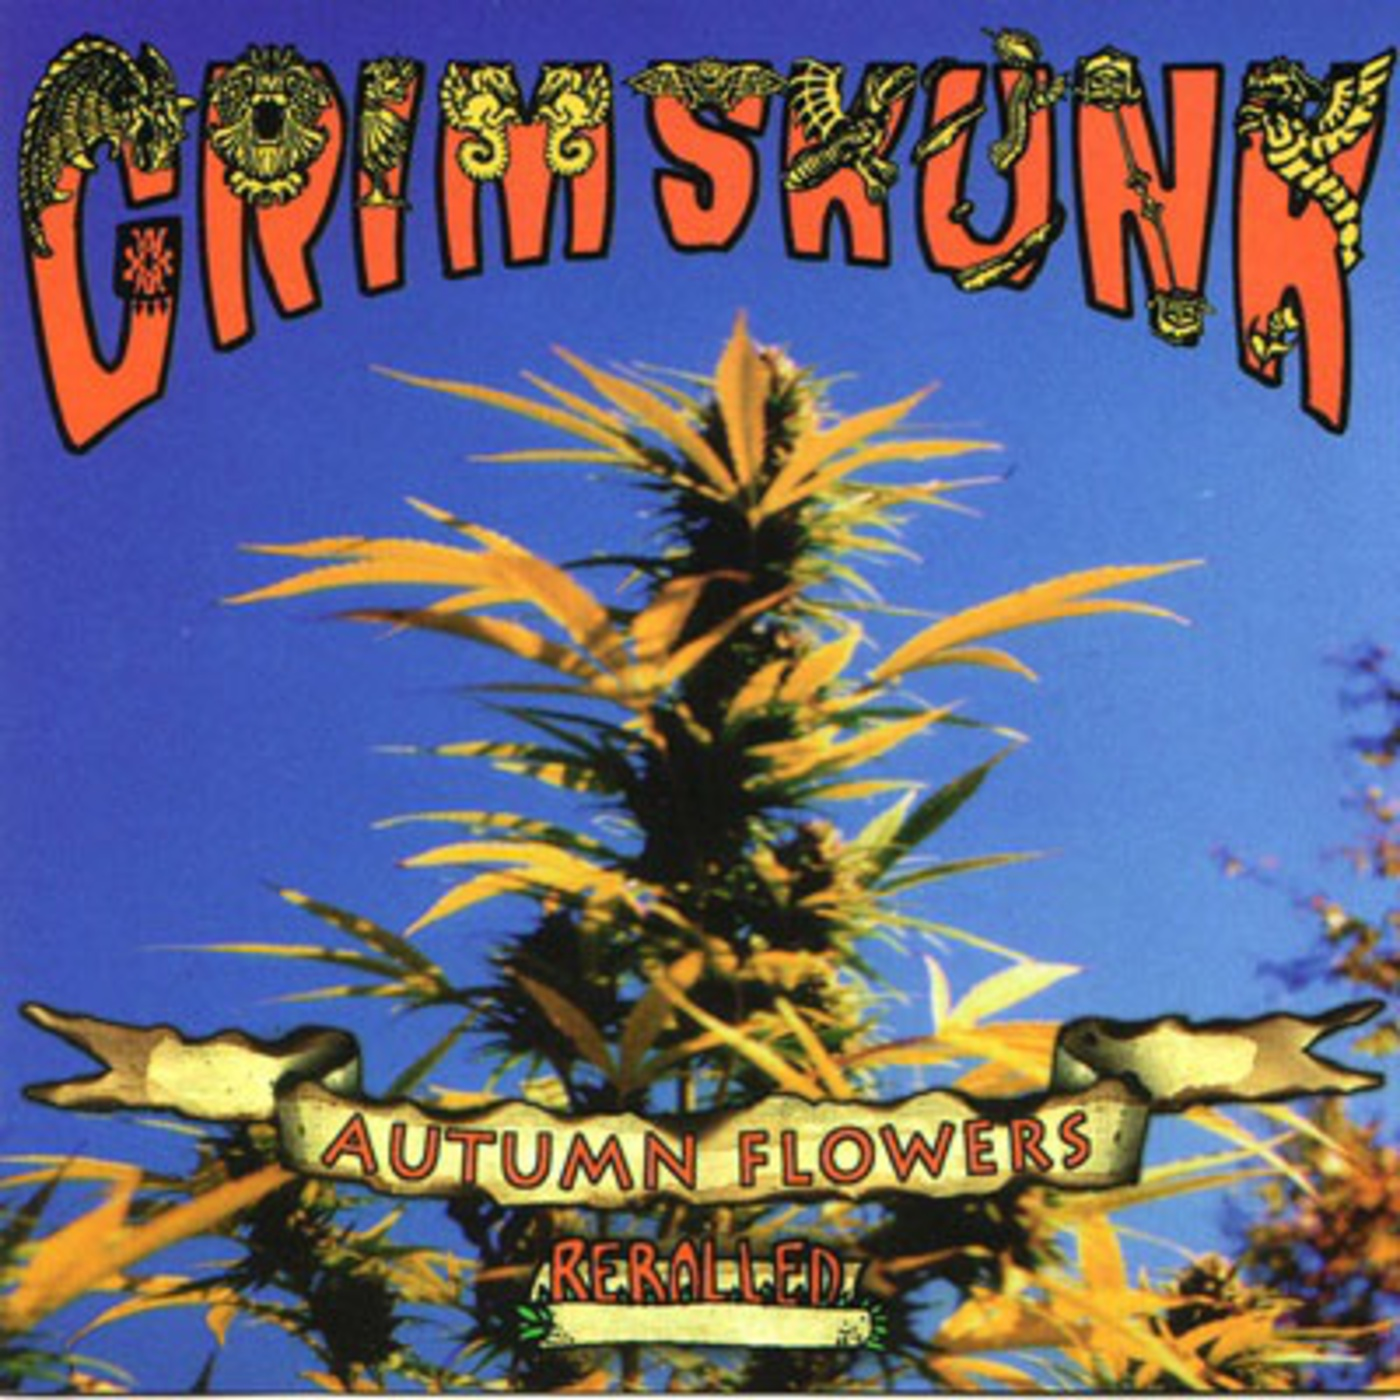 GrimSkunk - Autumn Flowers Rerolled